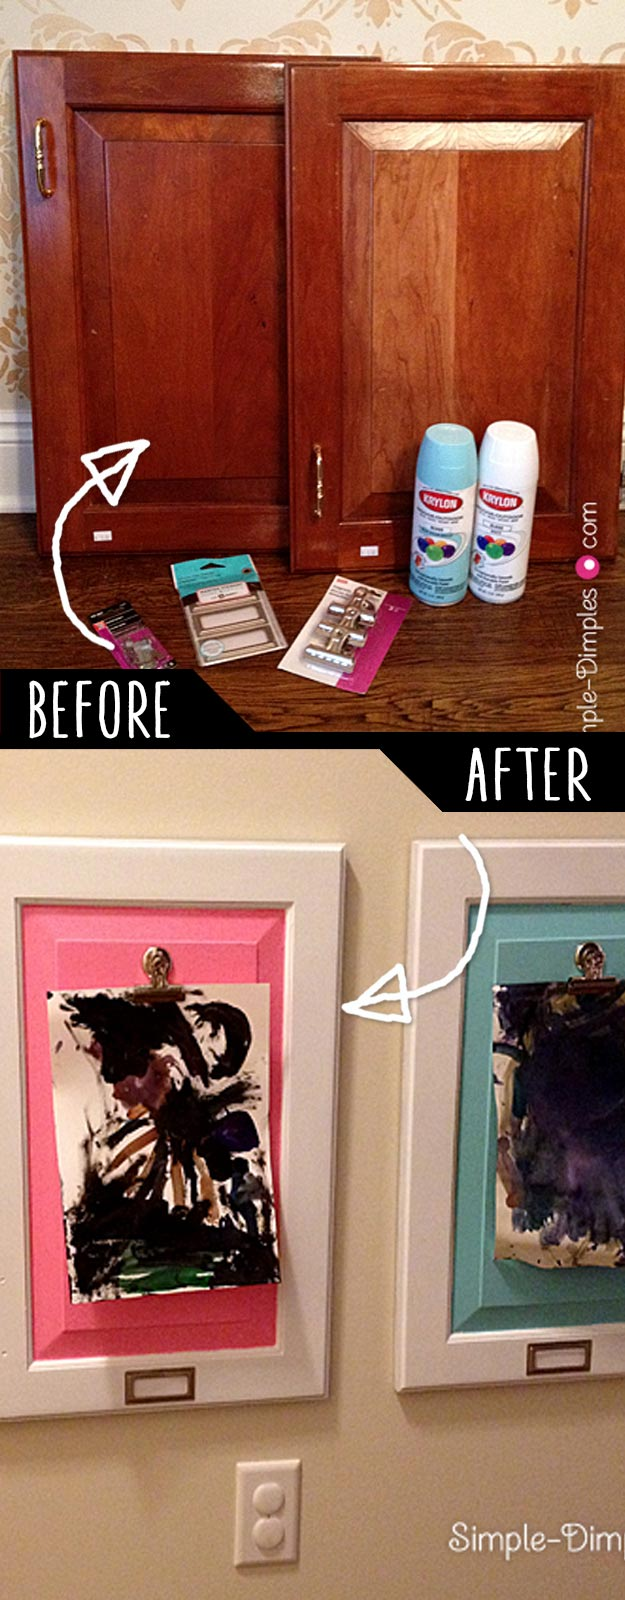 DIY Furniture Hacks   Artwork Display for Children using Cabinet Doors   Cool Ideas for Creative Do It Yourself Furniture Made From Things You Might Not Expect #diy